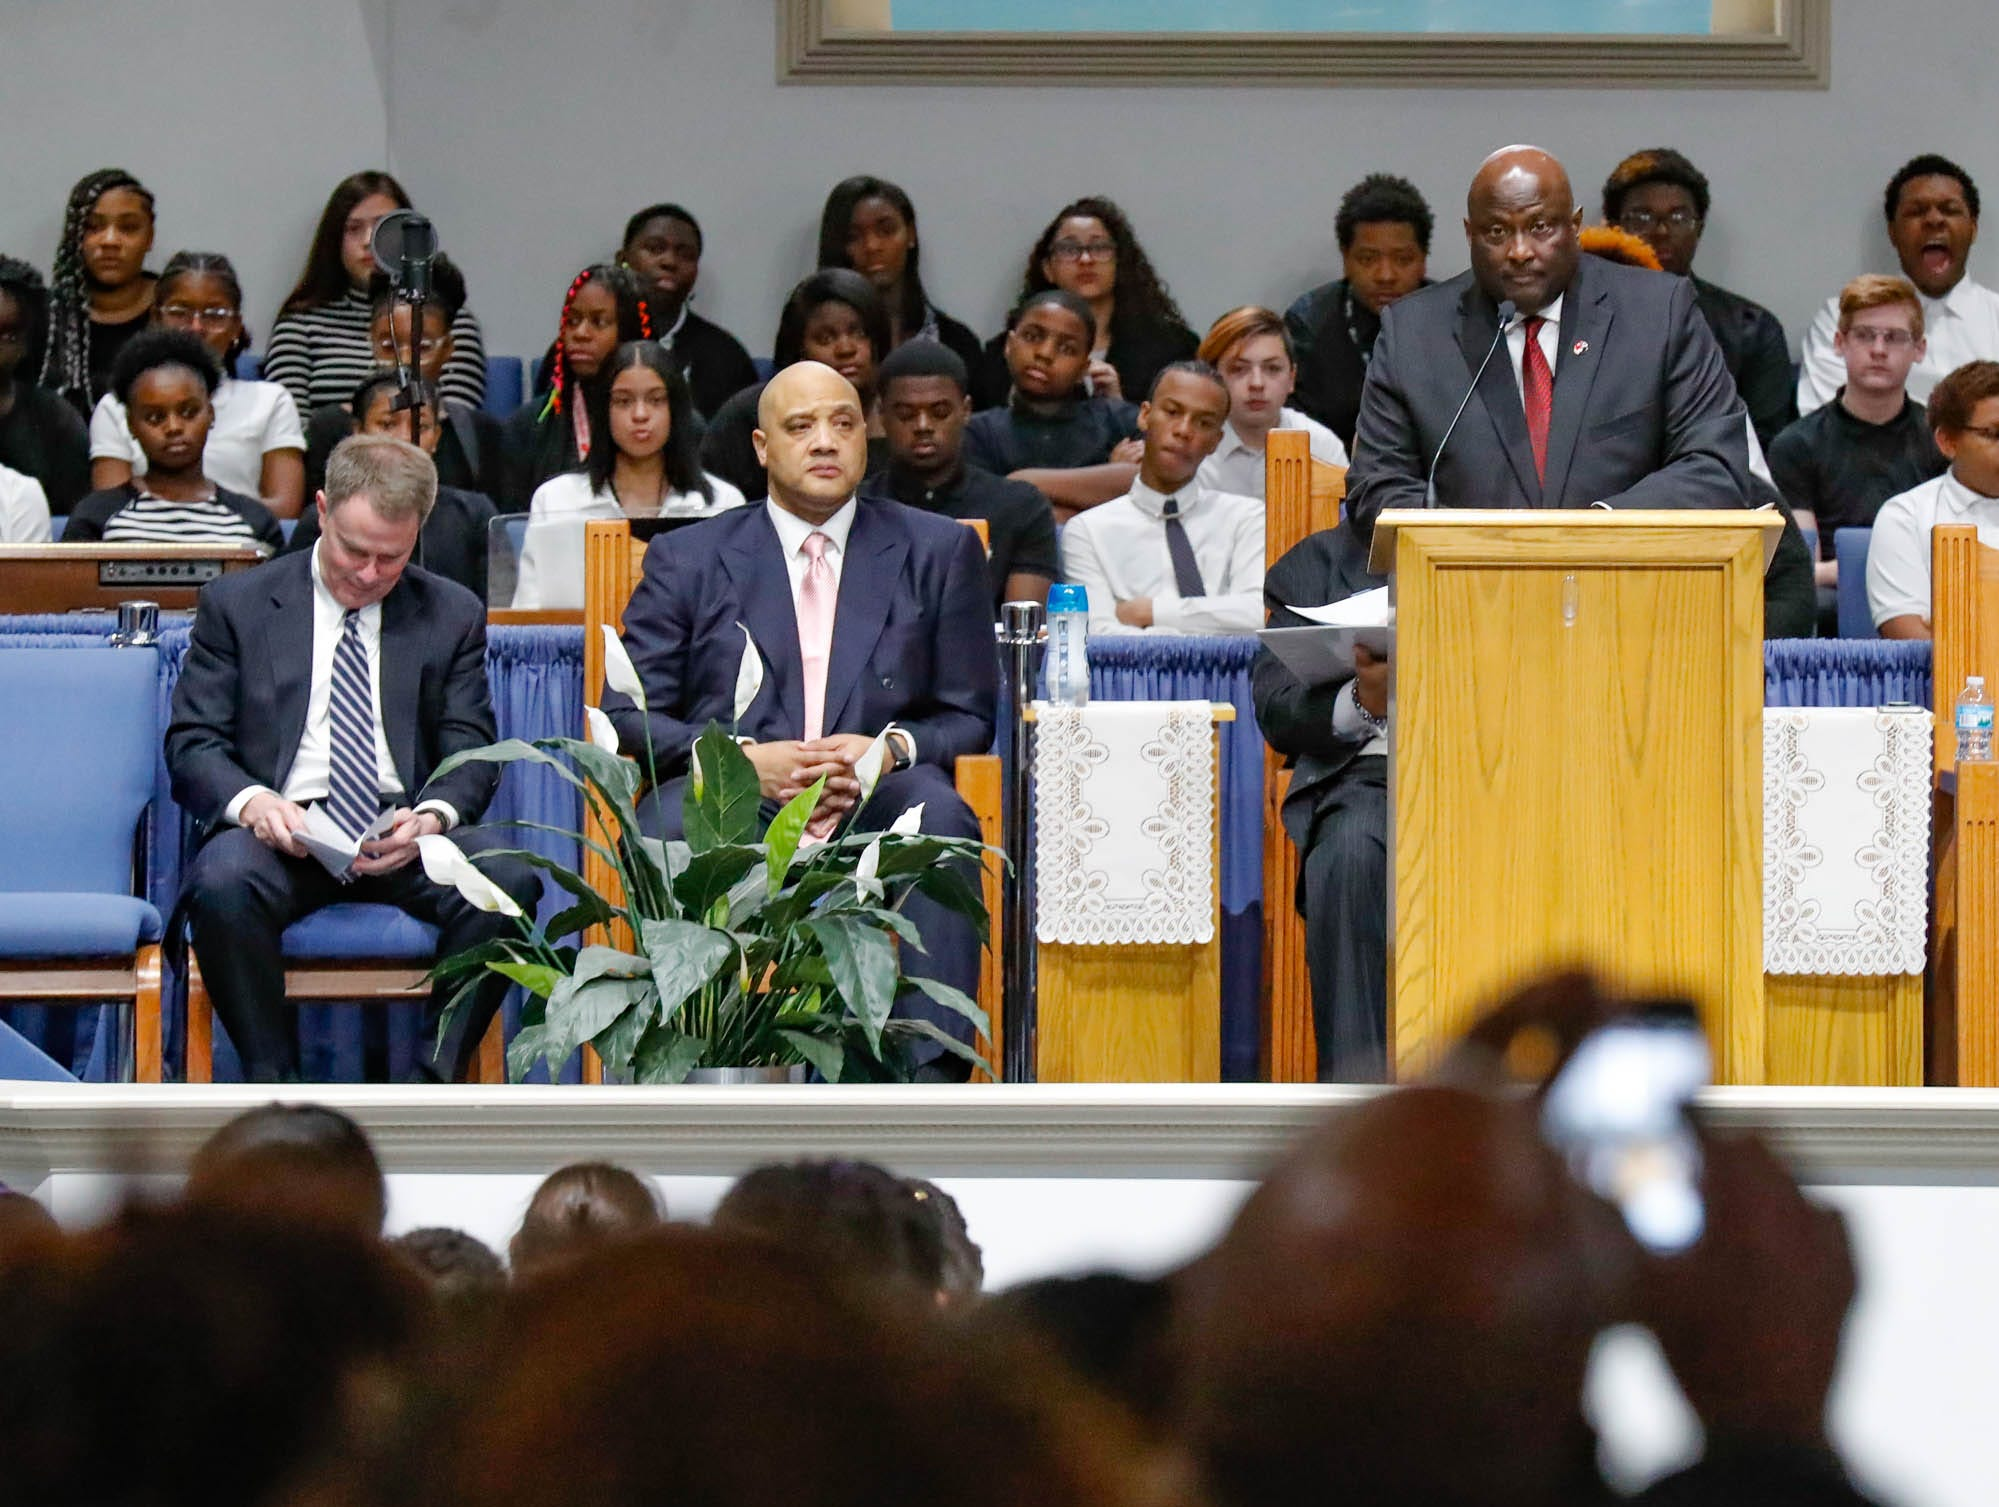 """President and founder of the Steward Speakers Lecture Series, Matthew Steward, speaks about the non-for prrofit's vision during the annual Steward Speakers Lecture Series event, held at Olivet Missionary Baptist Church in Indianapolis on Thursday, Feb. 21, 2019. This years theme was """"Year of the woman""""."""